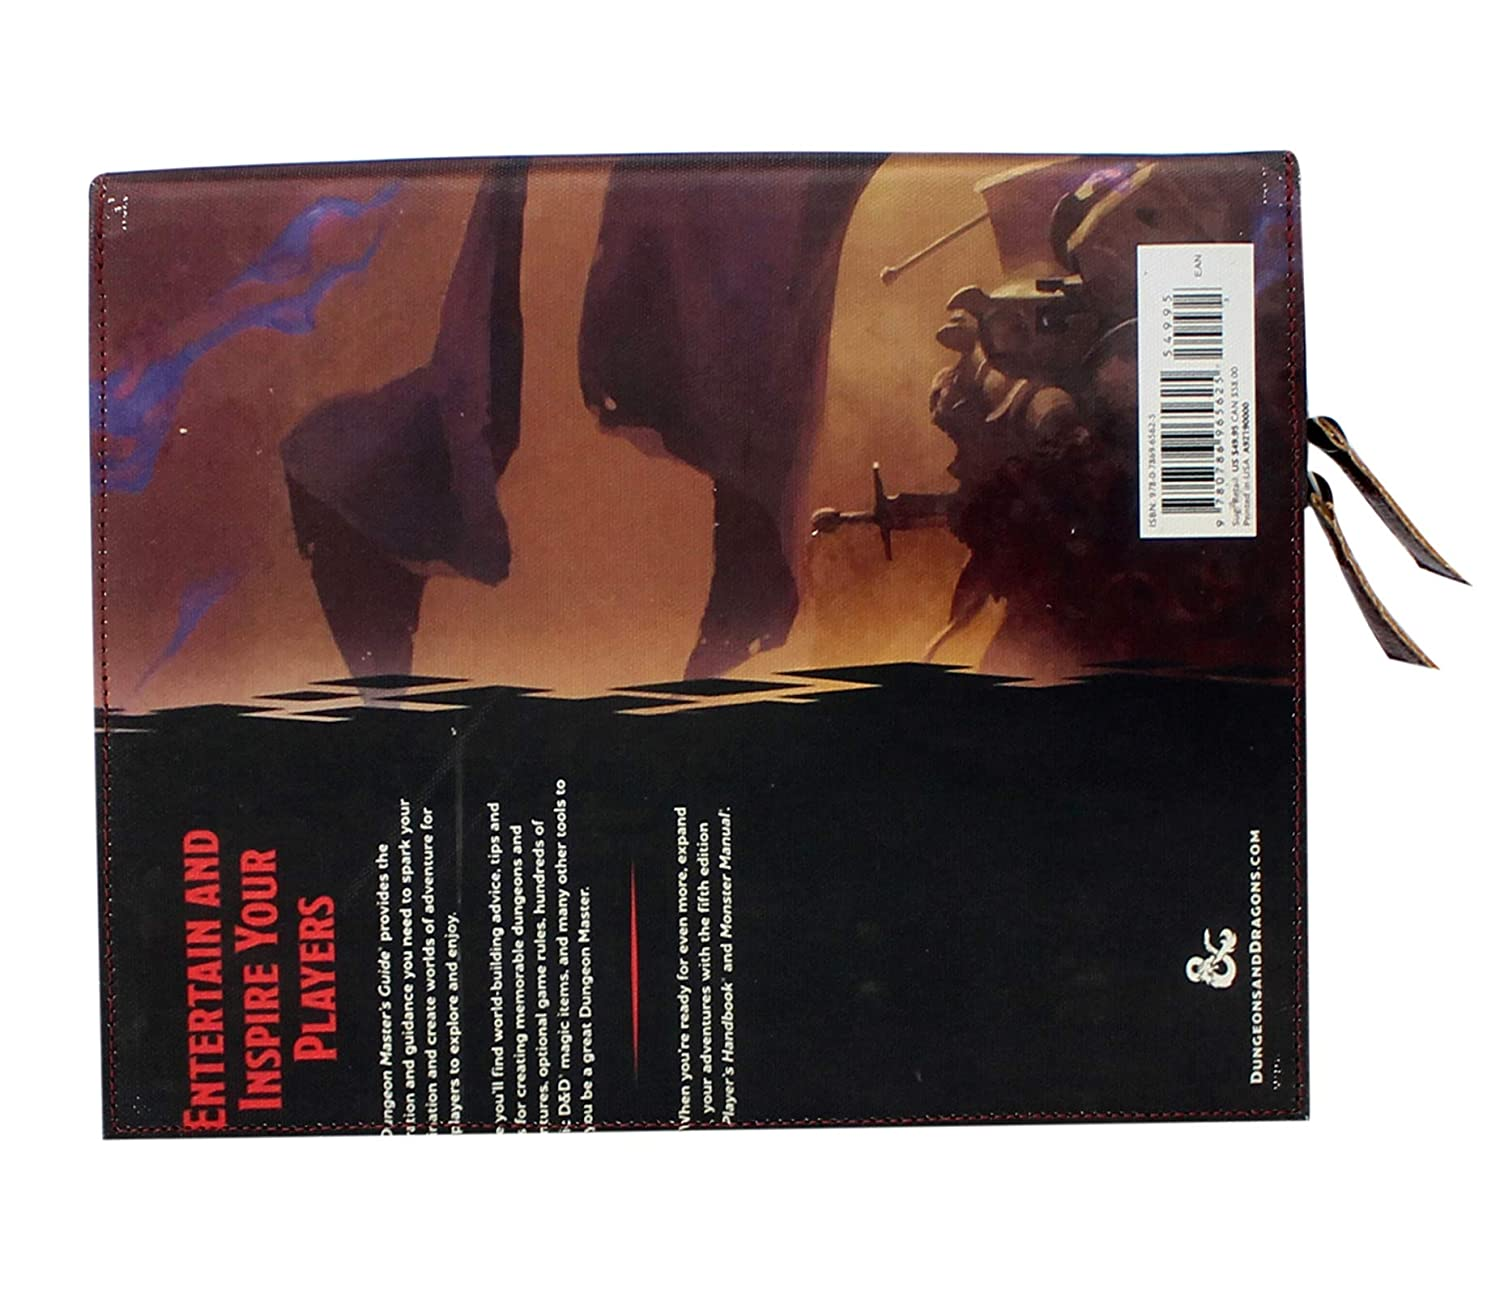 Dungeon Masters Guide Case for 16.5 inches Standard Laptop case with Handles